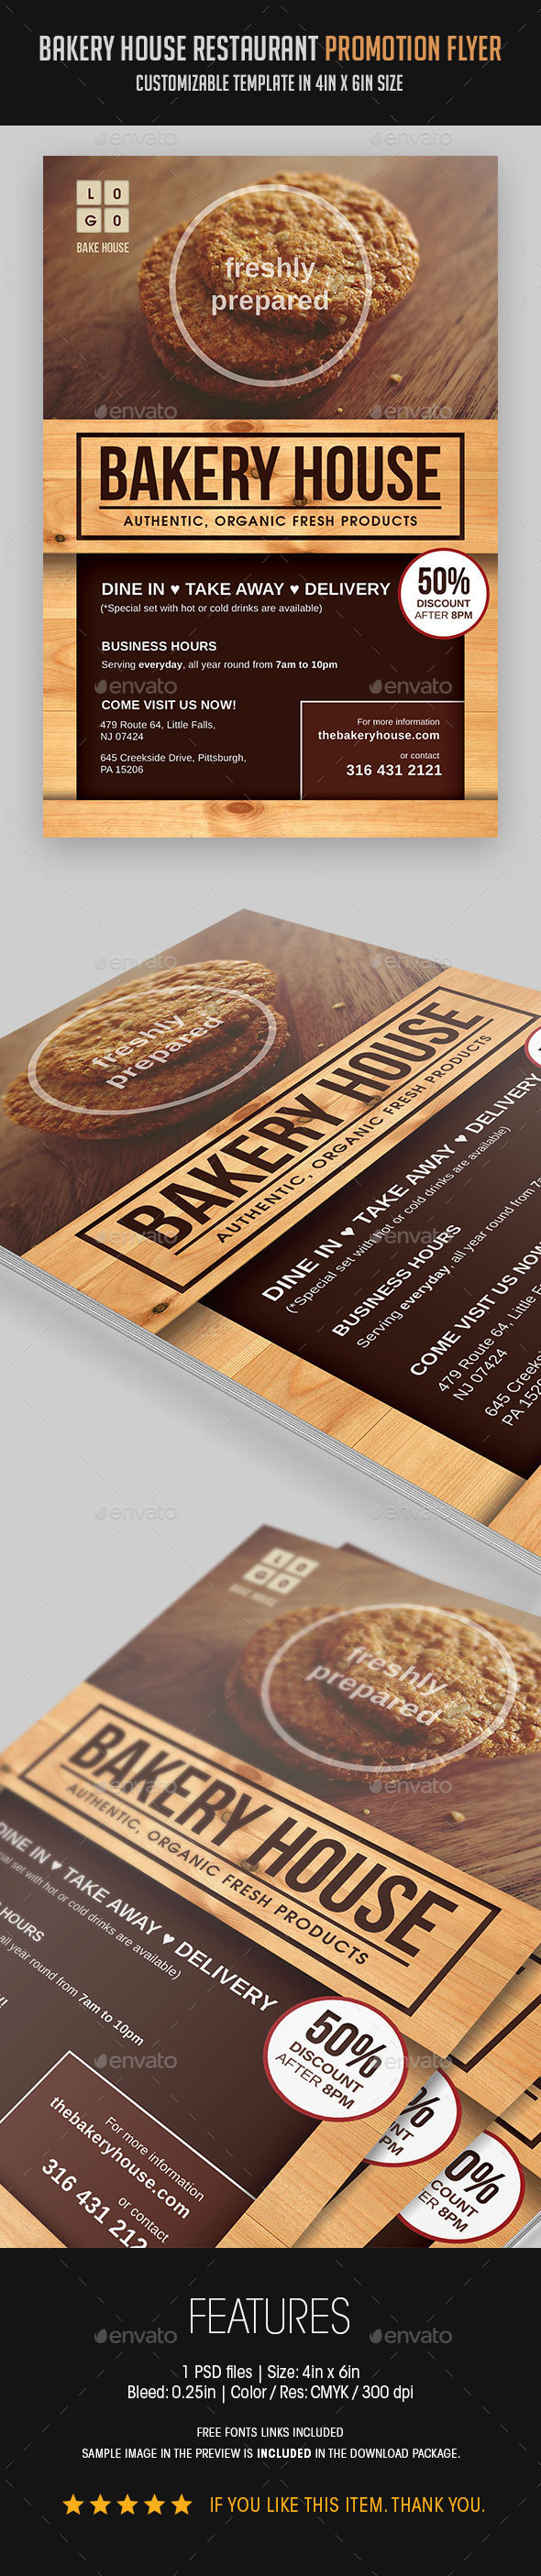 Bakery House Restaurant Promotion Flyer - Restaurant Flyers